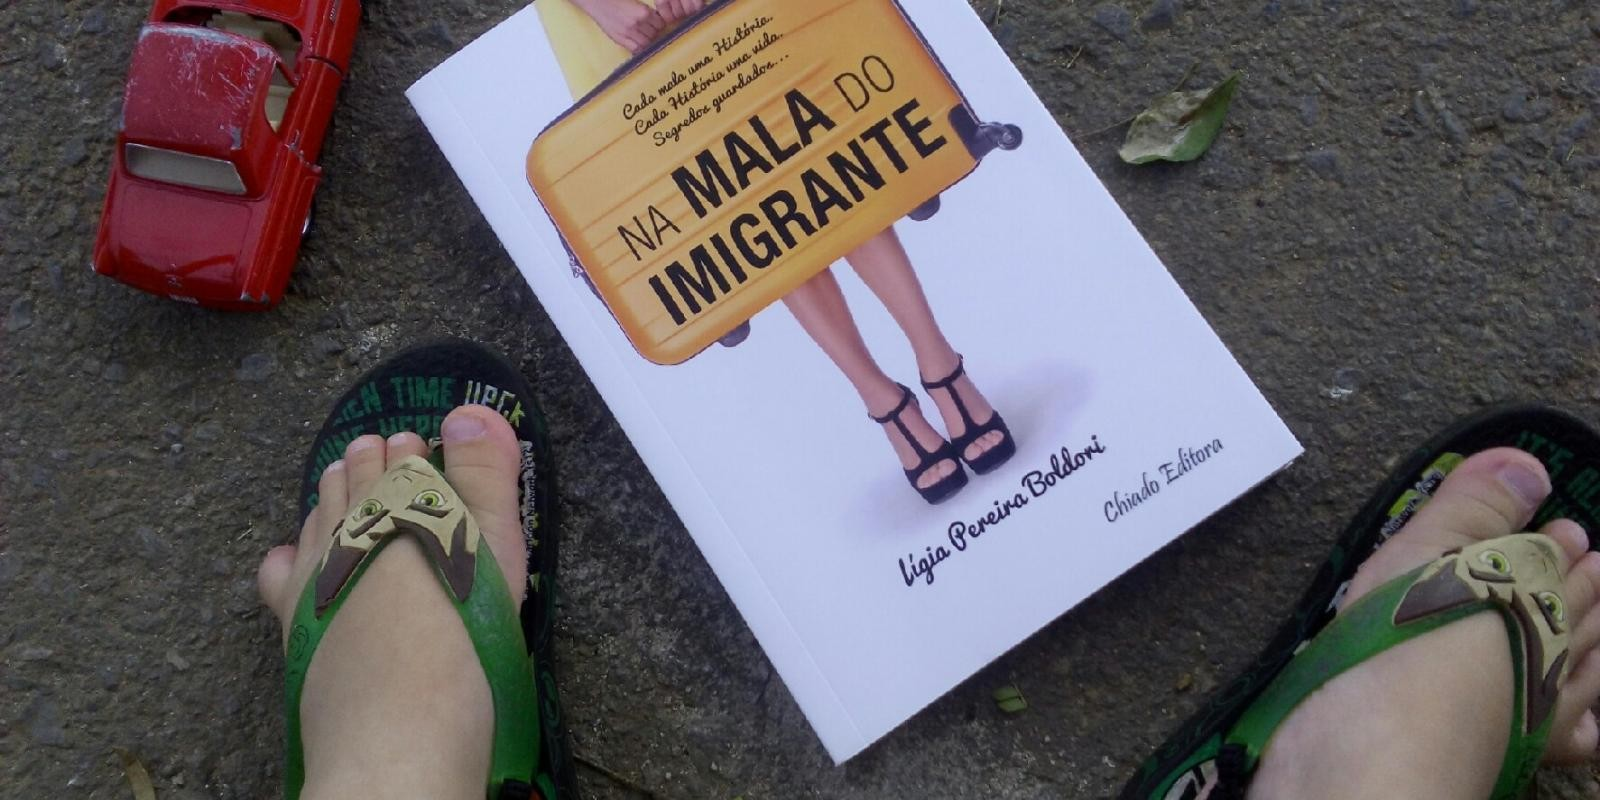 [Na mala do imigrante]